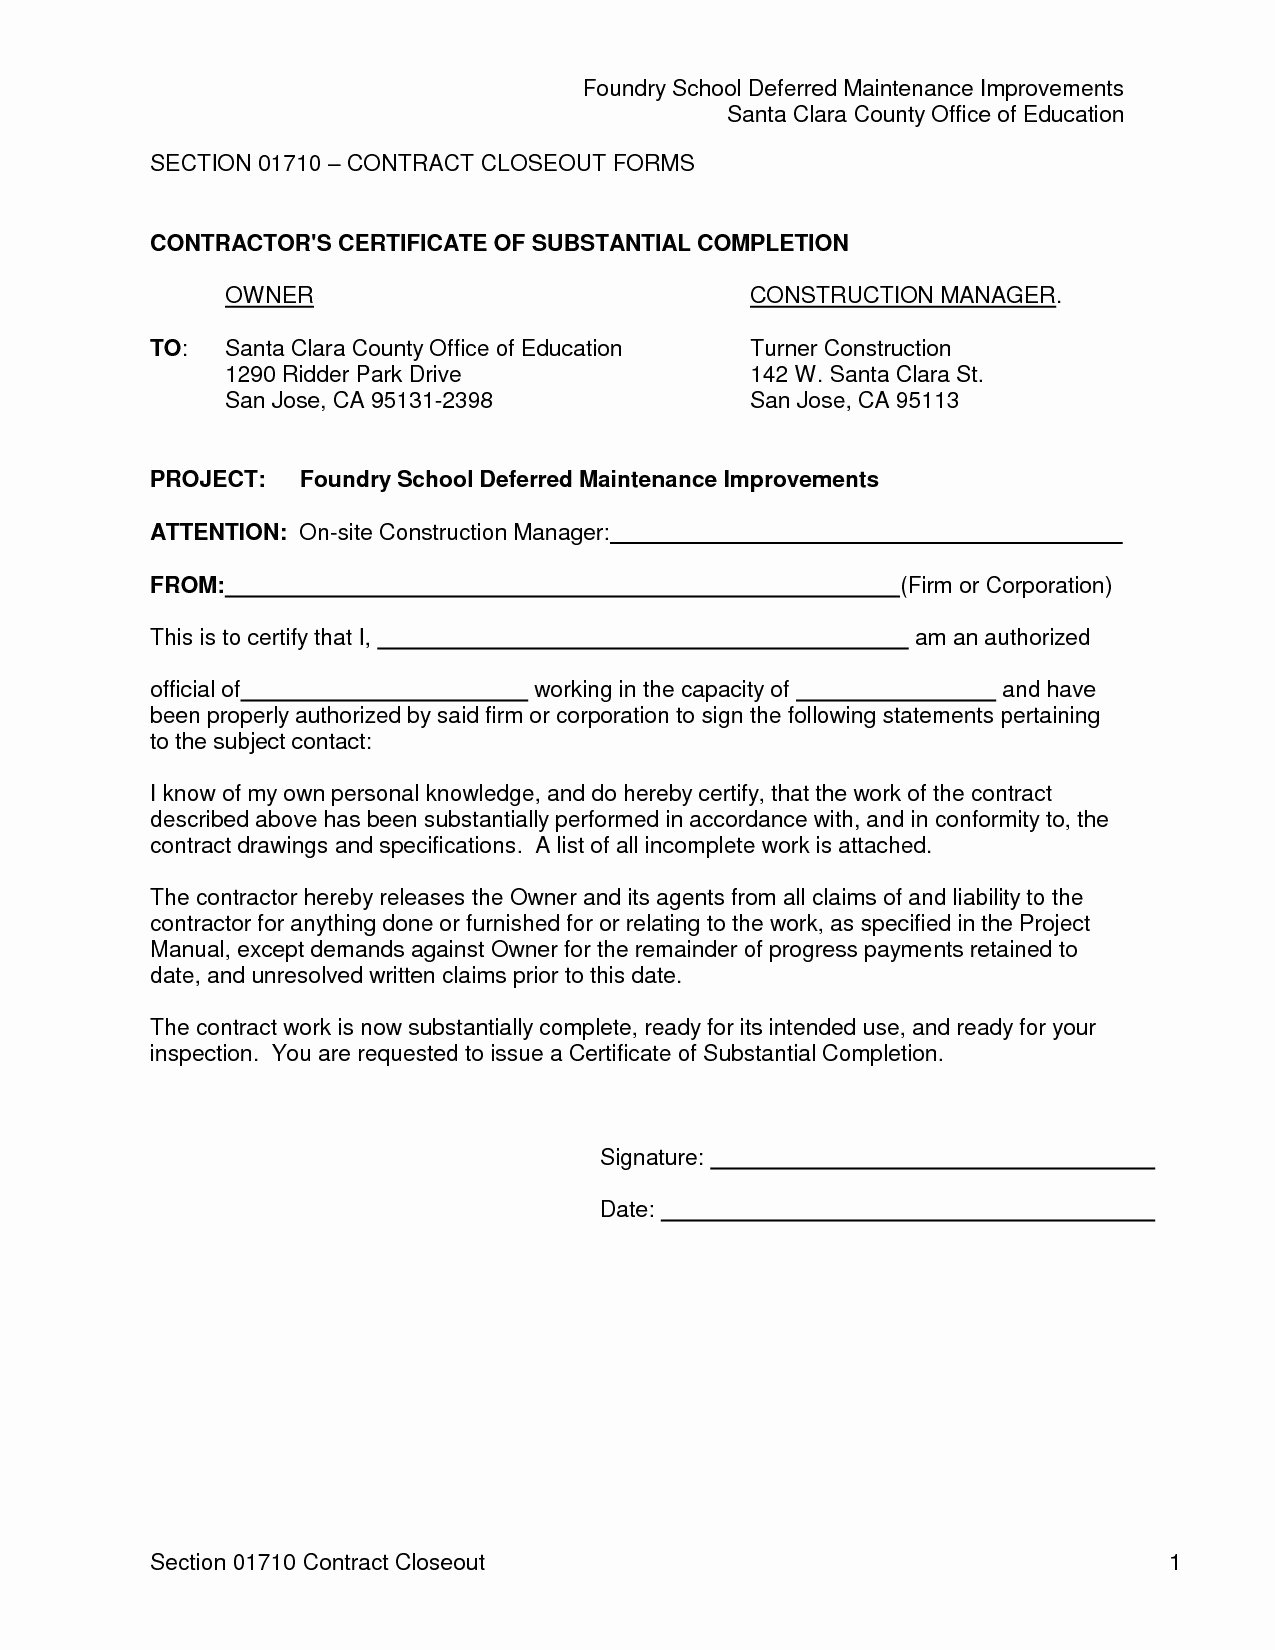 Construction Completion Certificate Template Best Of Letter Substantial Pletion Template Examples